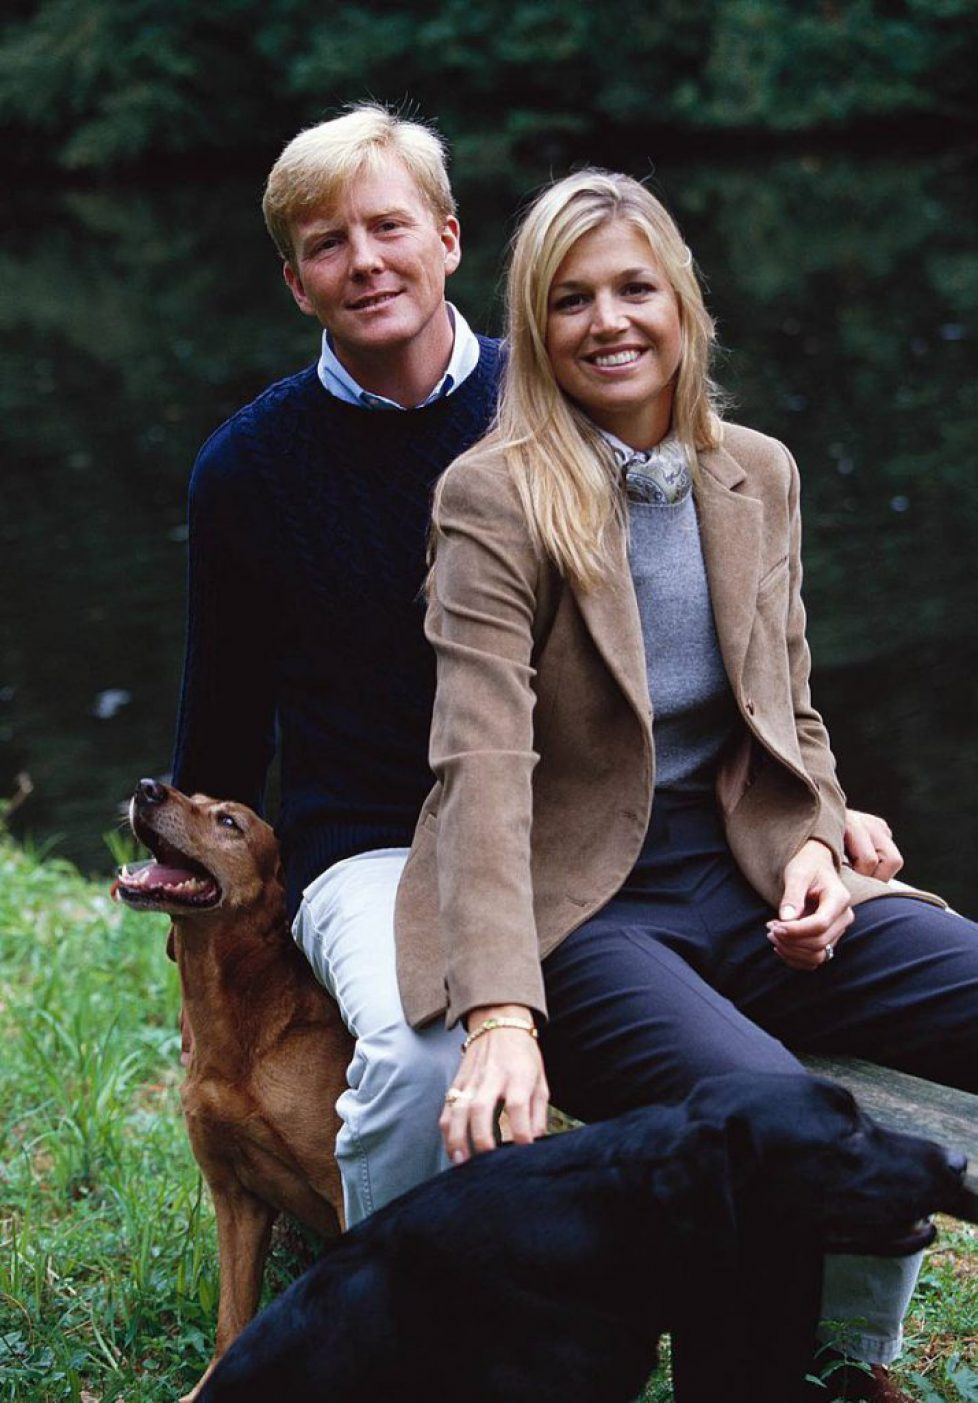 800px-Willem-alexander_and_maxima_2001